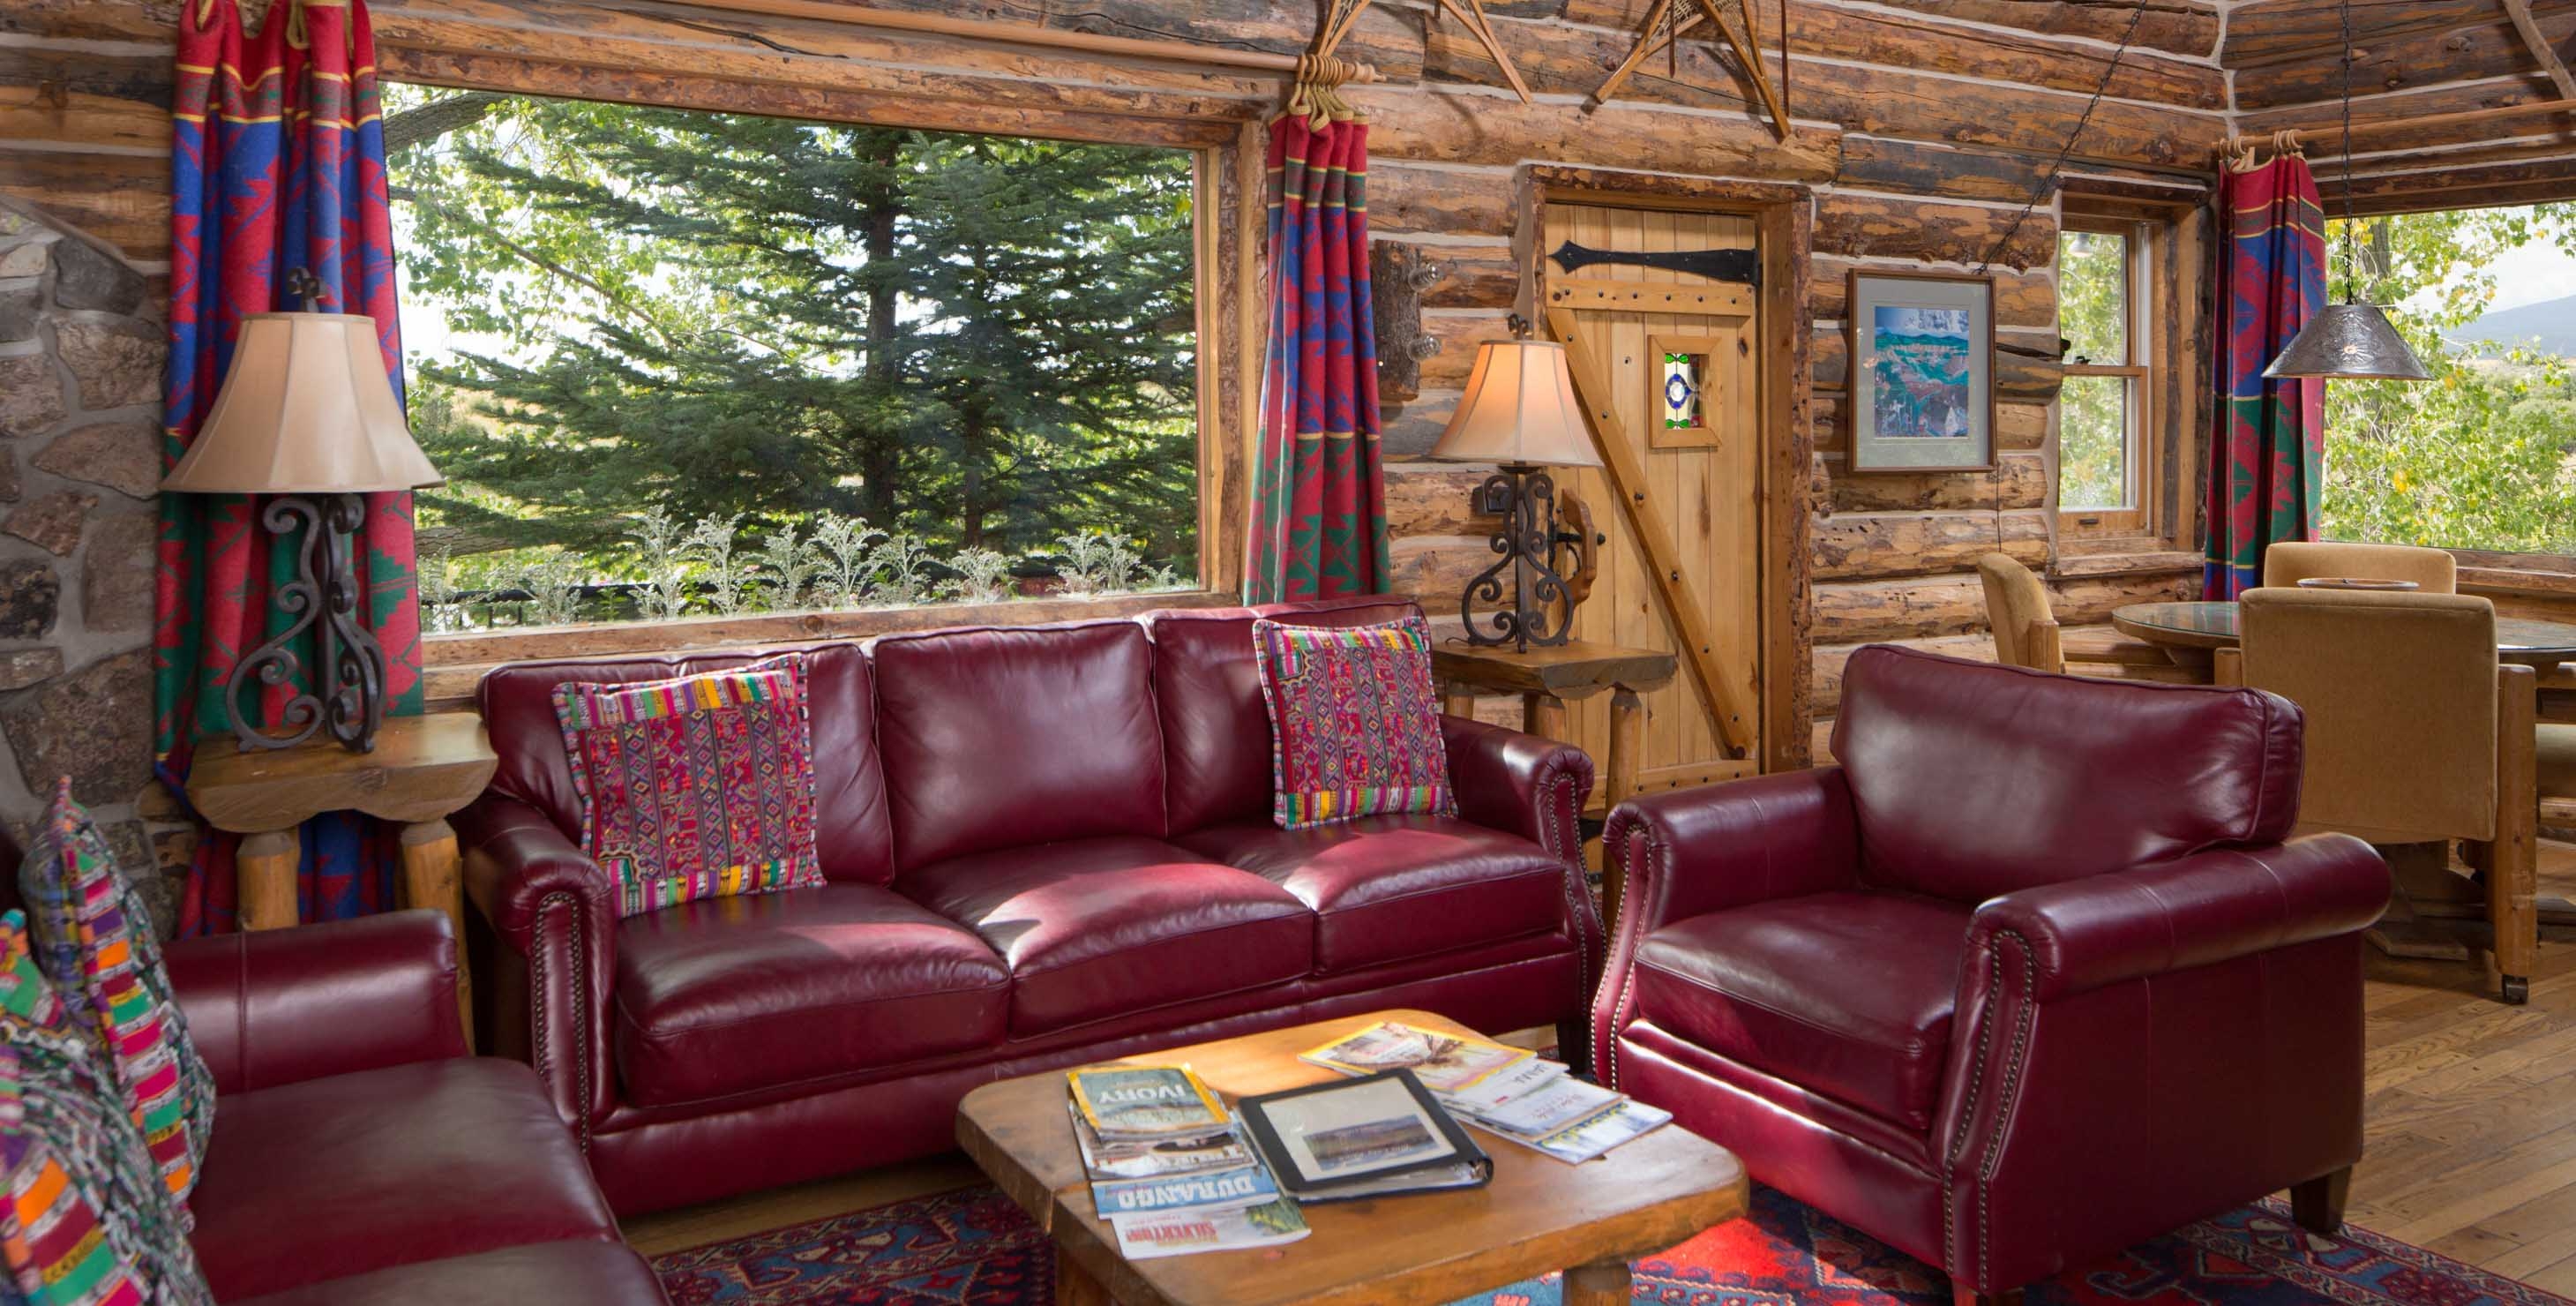 Living room in a log cabin with red leather couches and large windows